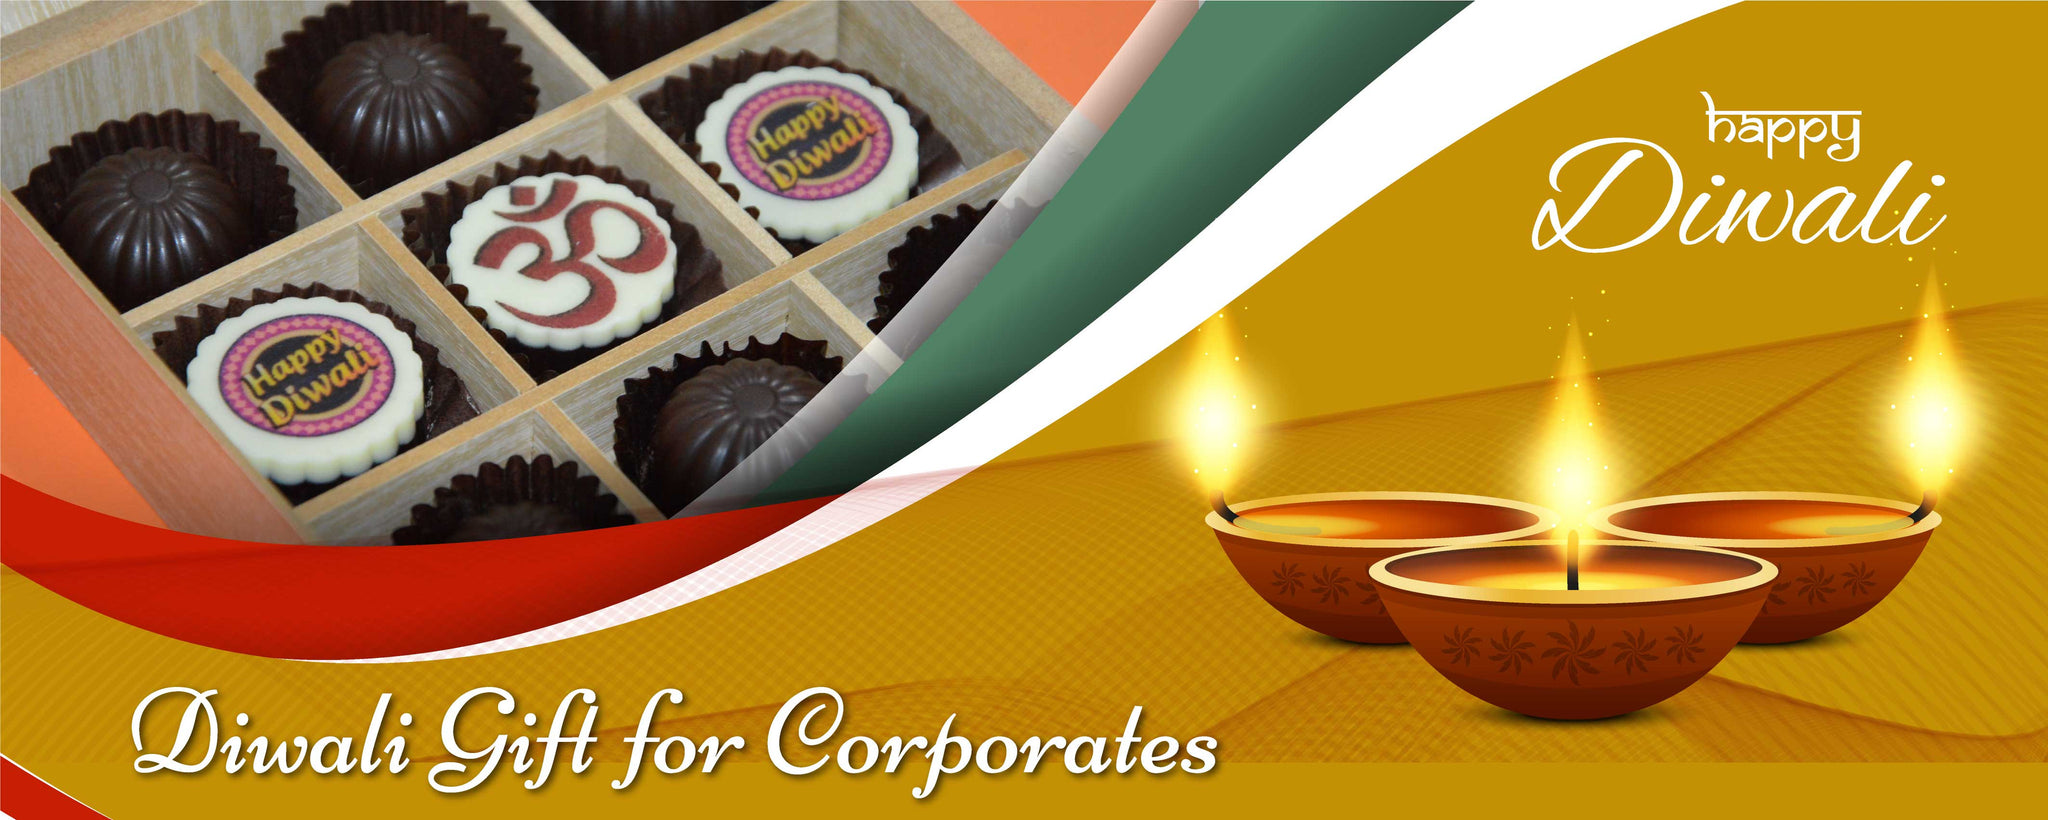 Diwali gifts for employees corporate diwali gifts diwali banner for diwali gift for employees negle Choice Image